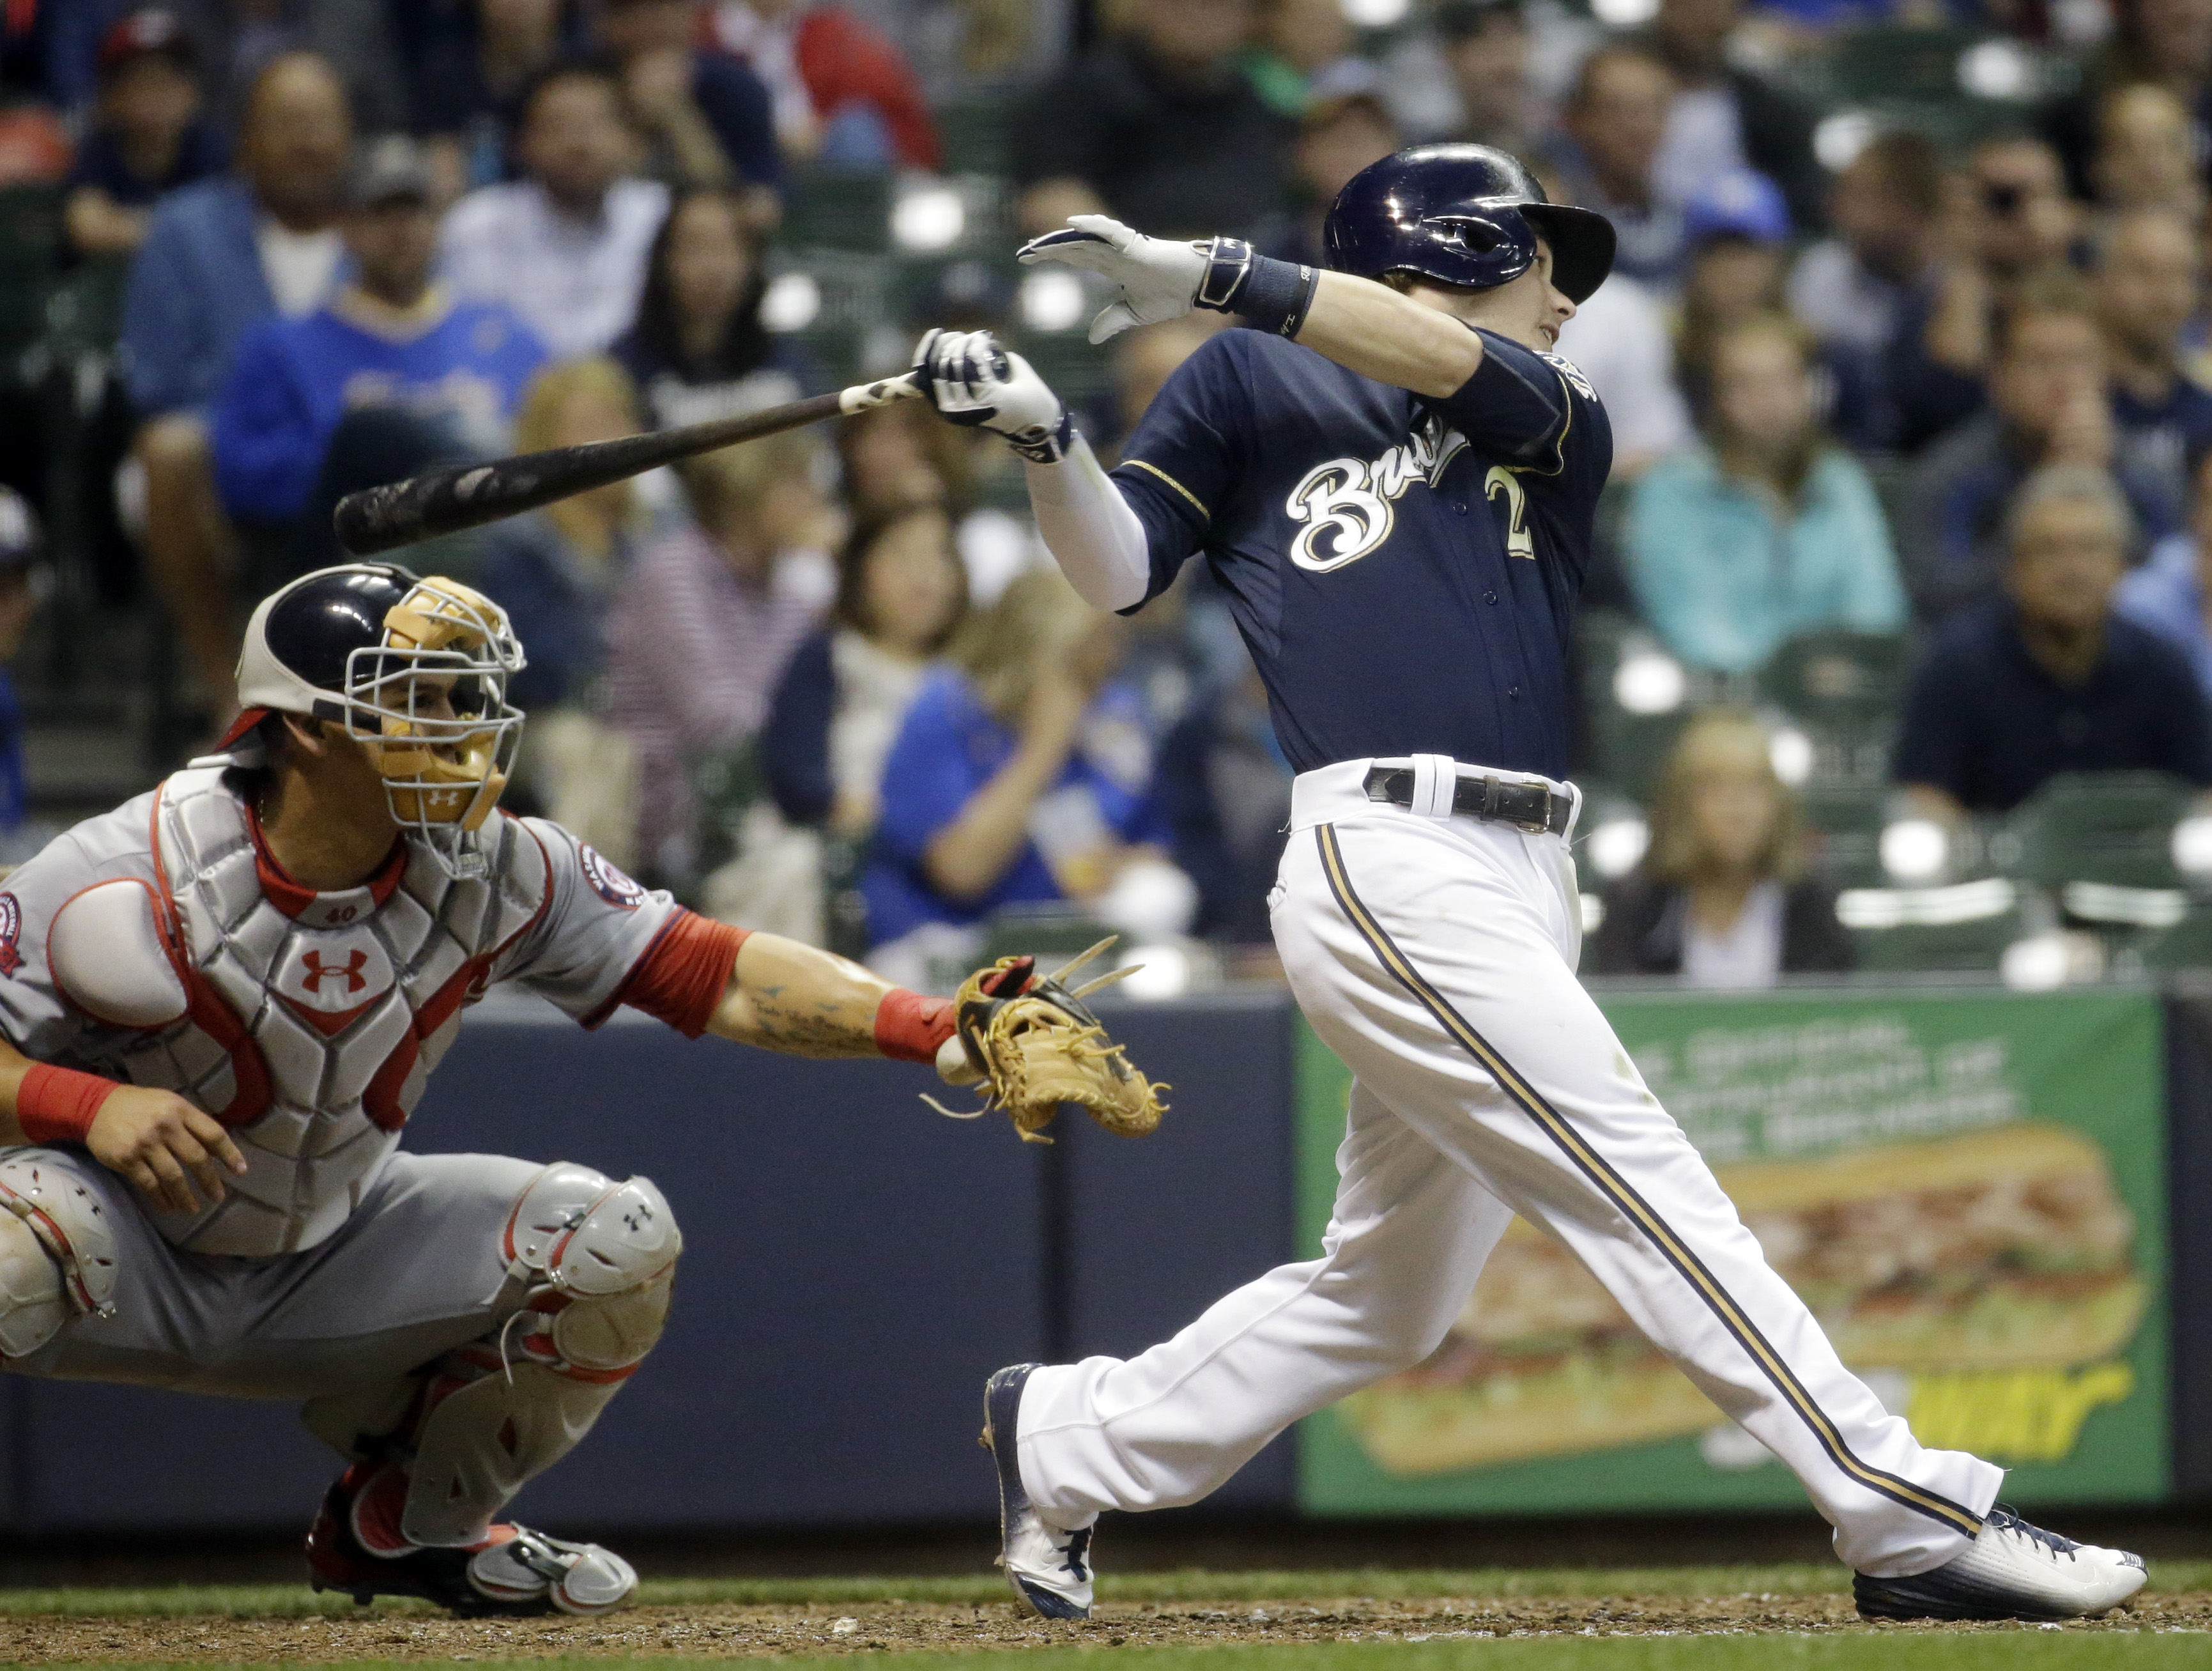 Milwaukee Brewers' Scooter Gennett, right, hits an RBI-single during the eighth inning of a baseball game against the Washington Nationals, Thursday, June 11, 2015, in Milwaukee. (AP Photo/Morry Gash)